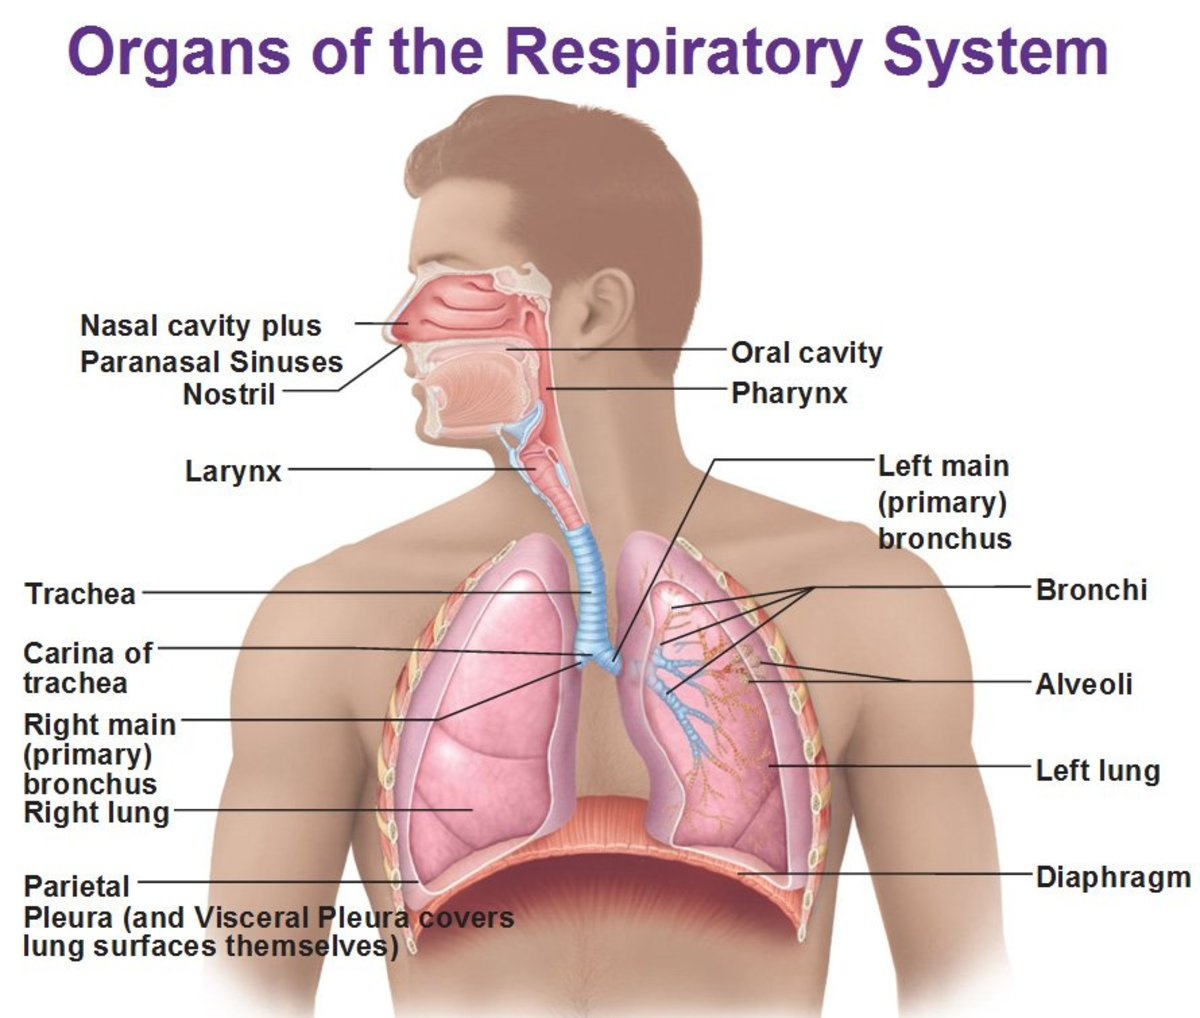 The Respiratory System of Human